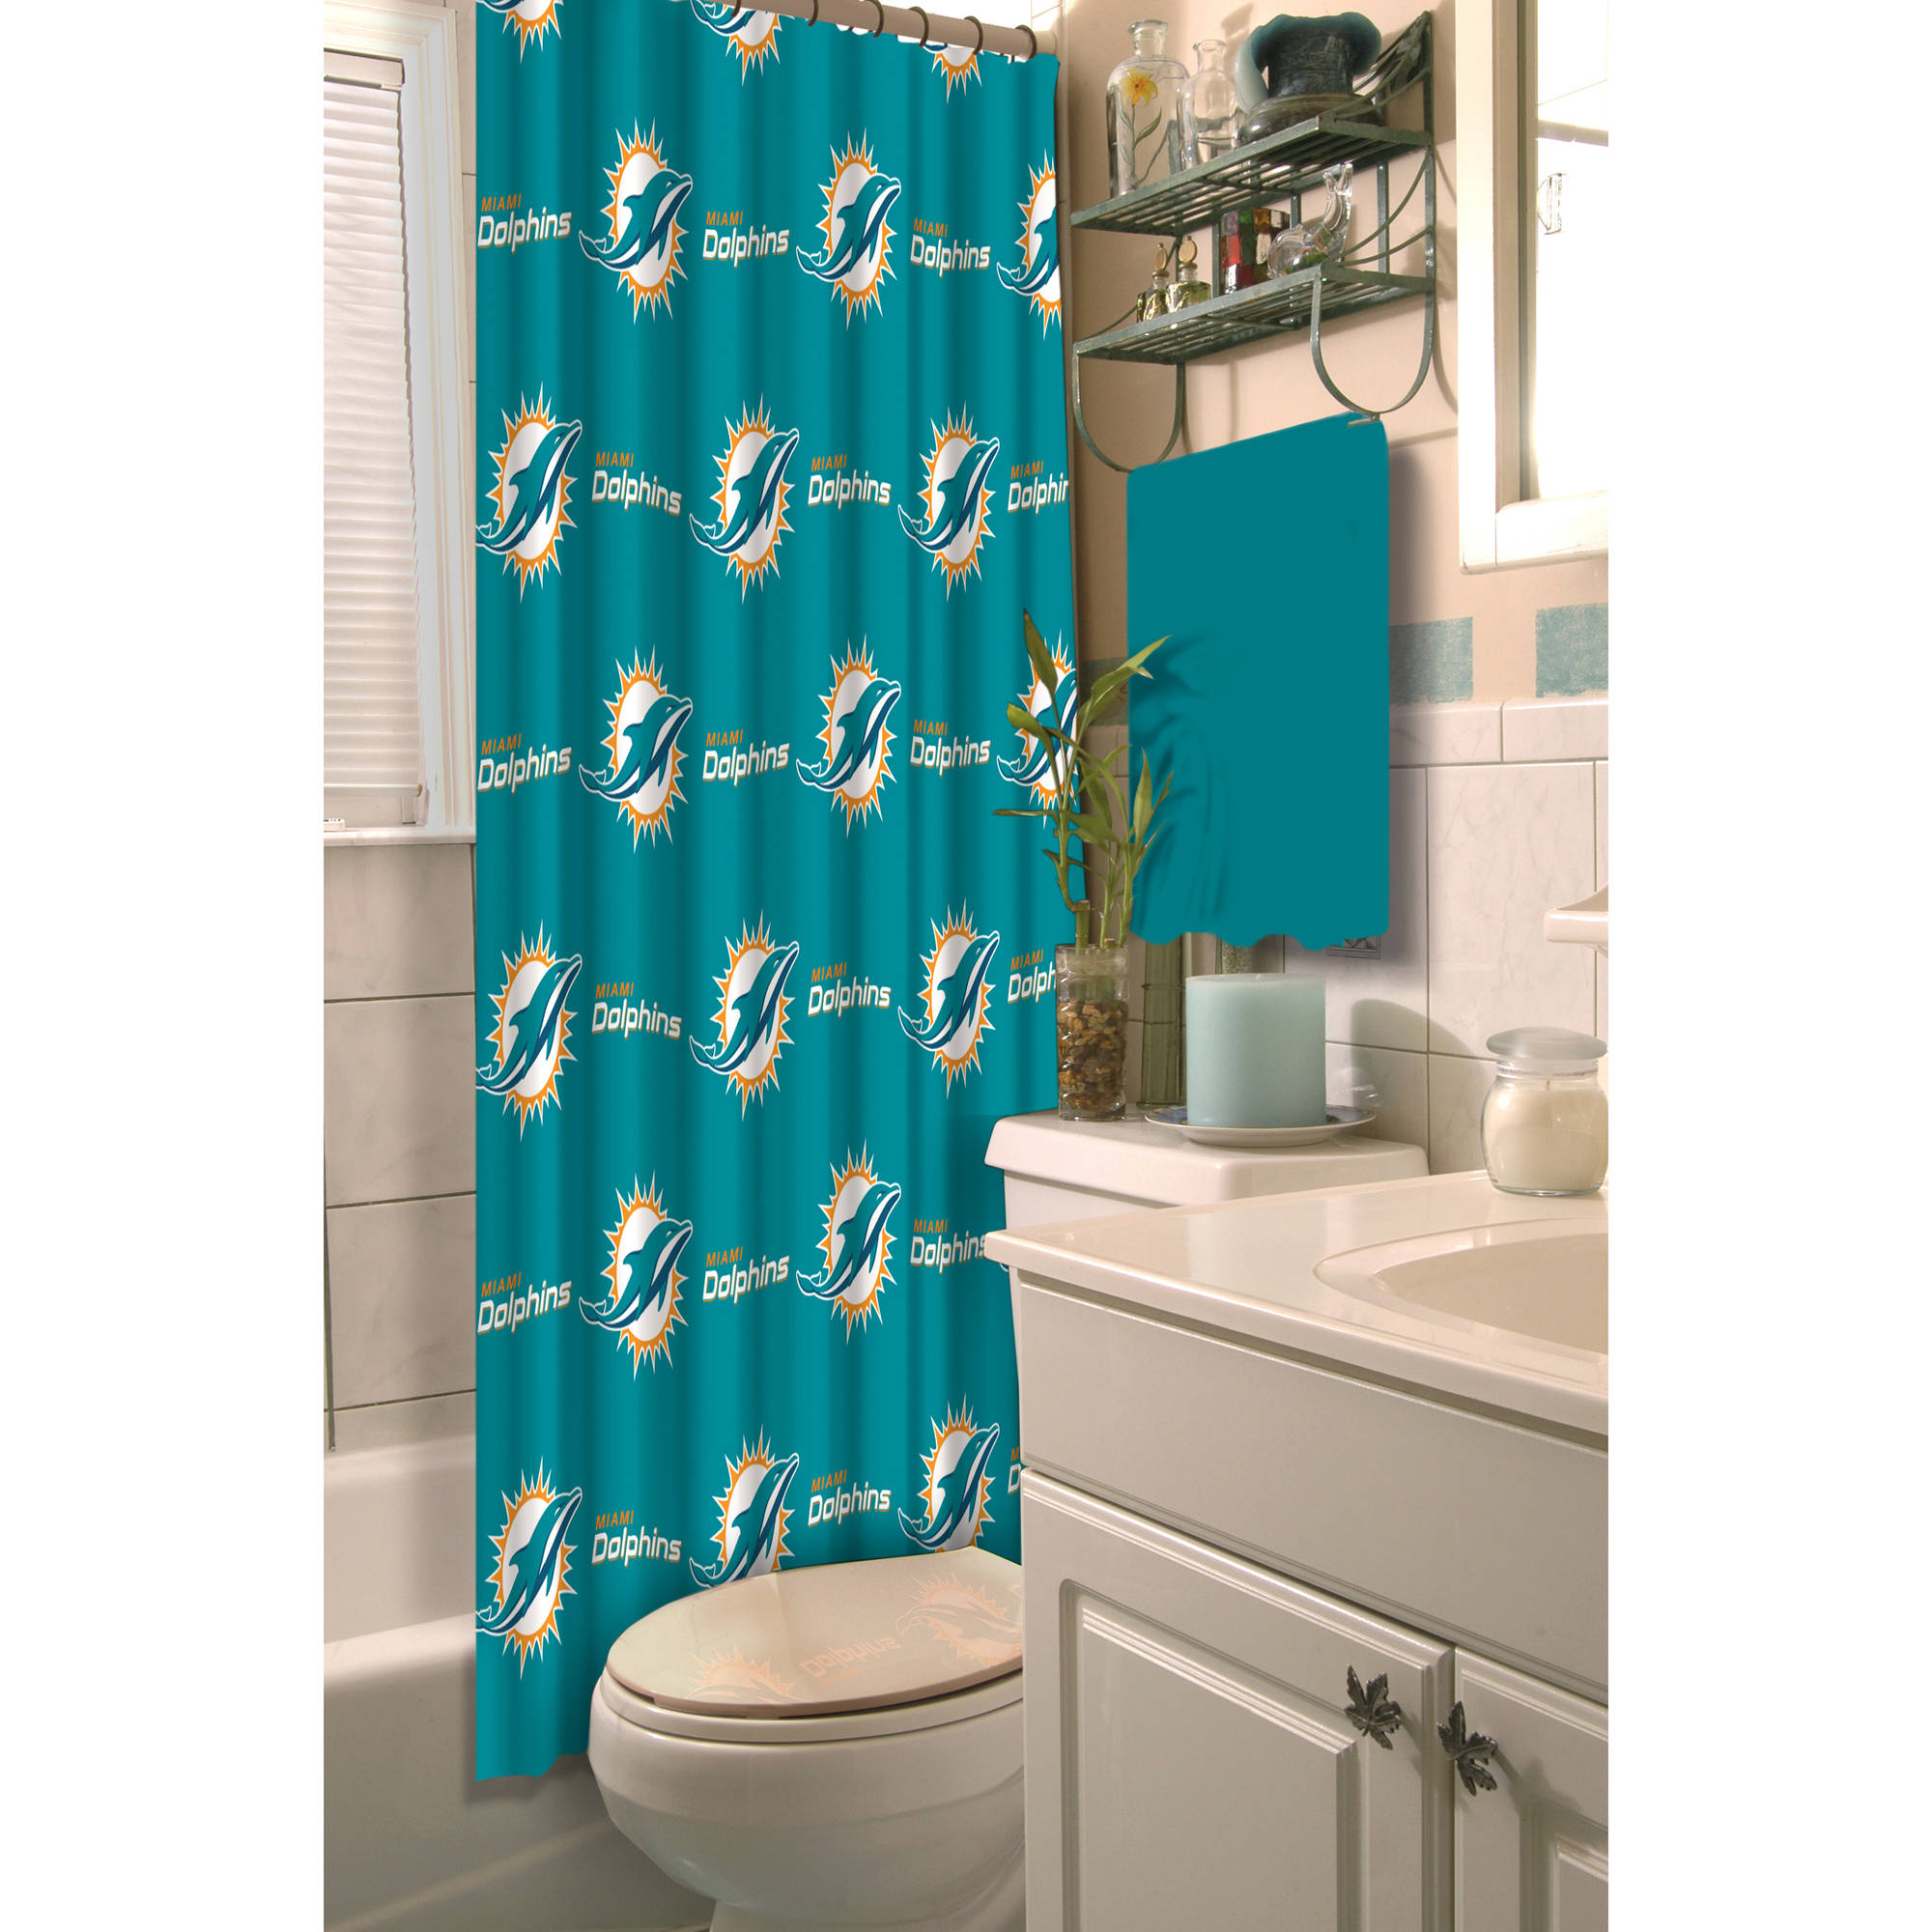 NFL Miami Dolphins Decorative Bath Collection - Shower Curtain